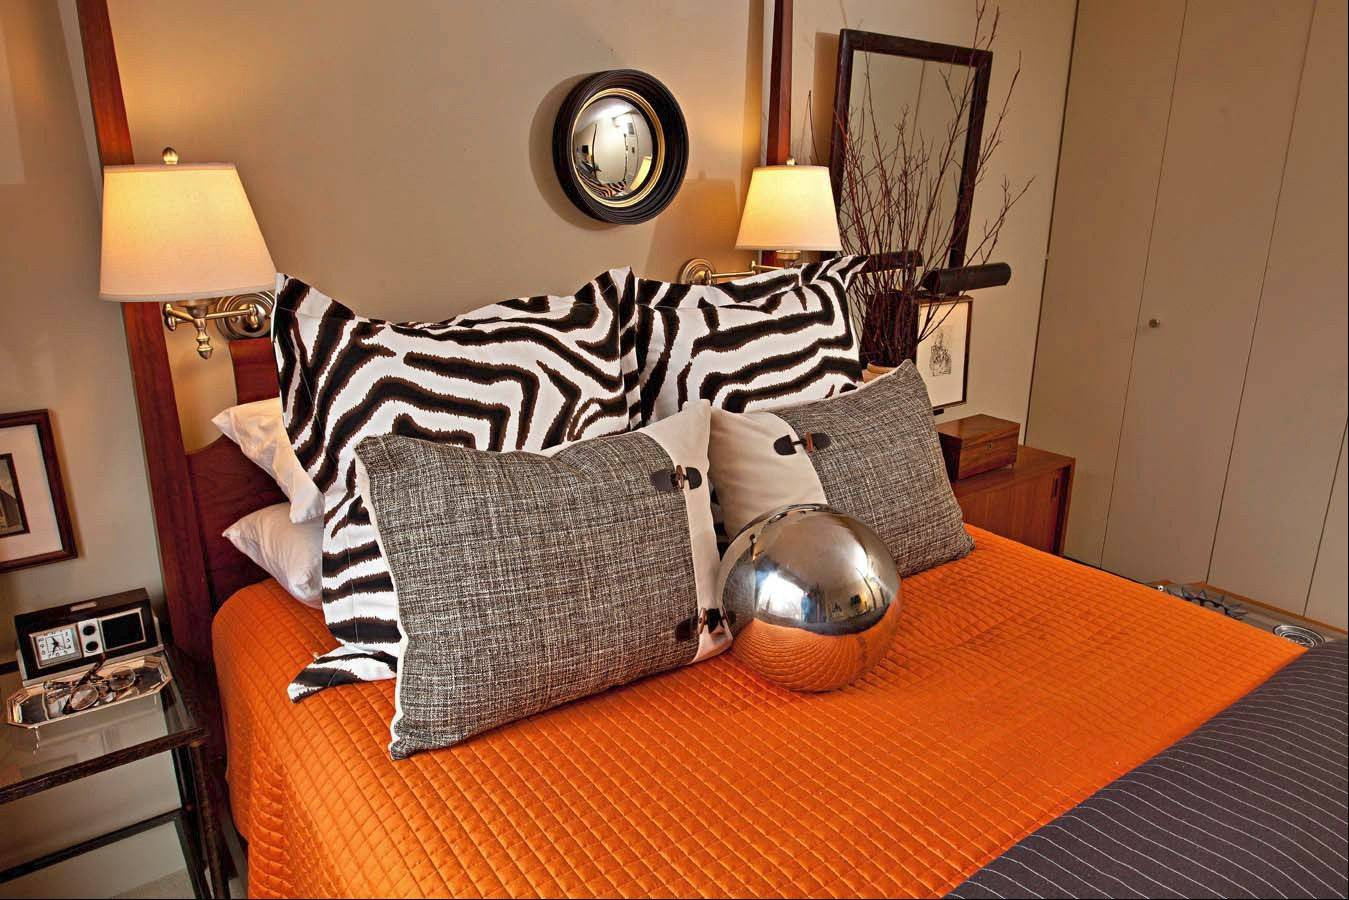 If you know you want to have lots of pillows on your bed, be sure to get a headboard that can visually support them.